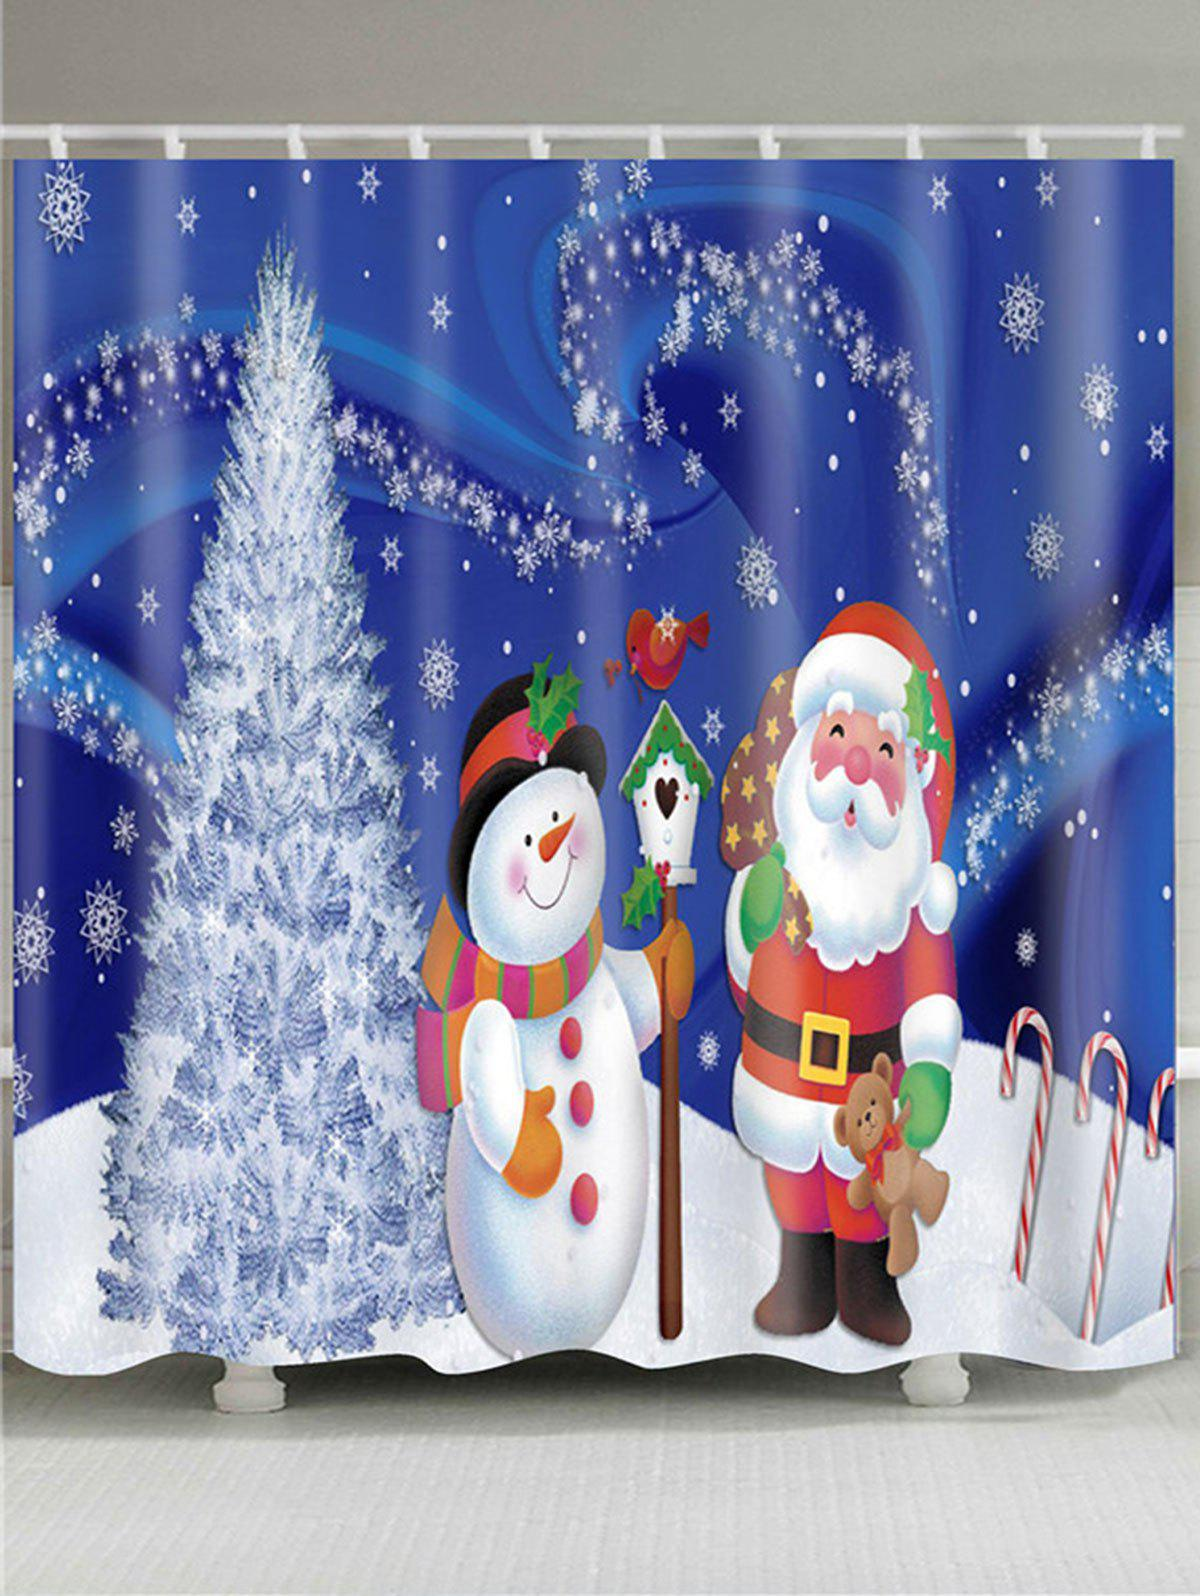 Christmas Tree Snowman Santa Claus Patterned Bath CurtainHOME<br><br>Size: W59 INCH * L71 INCH; Color: COLORFUL; Products Type: Shower Curtains; Materials: Polyester; Pattern: Christmas Tree,Santa Claus,Snowman; Style: Festival; Number of Hook Holes: W59 inch * L71 inch:10, W65 inch * L71 inch:12, W71 inch * L71 inch:12, W71 inch * L79 inch:12, W79 inch * L71 inch:12; Package Contents: 1 x Shower Curtain 1 x Hooks (Set);